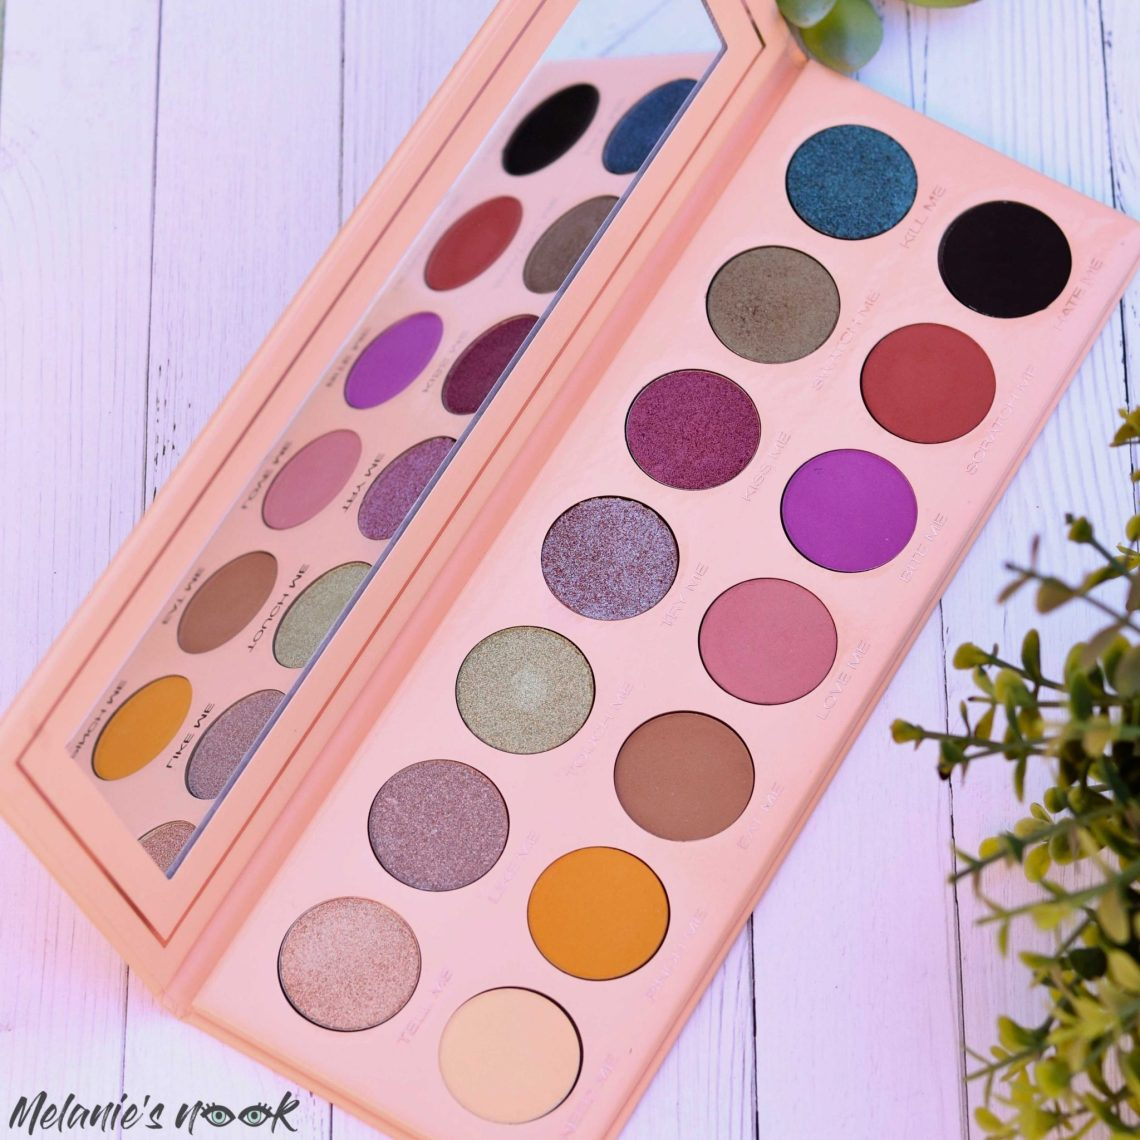 New in Beauty - February 2020 Pinch Me Palette